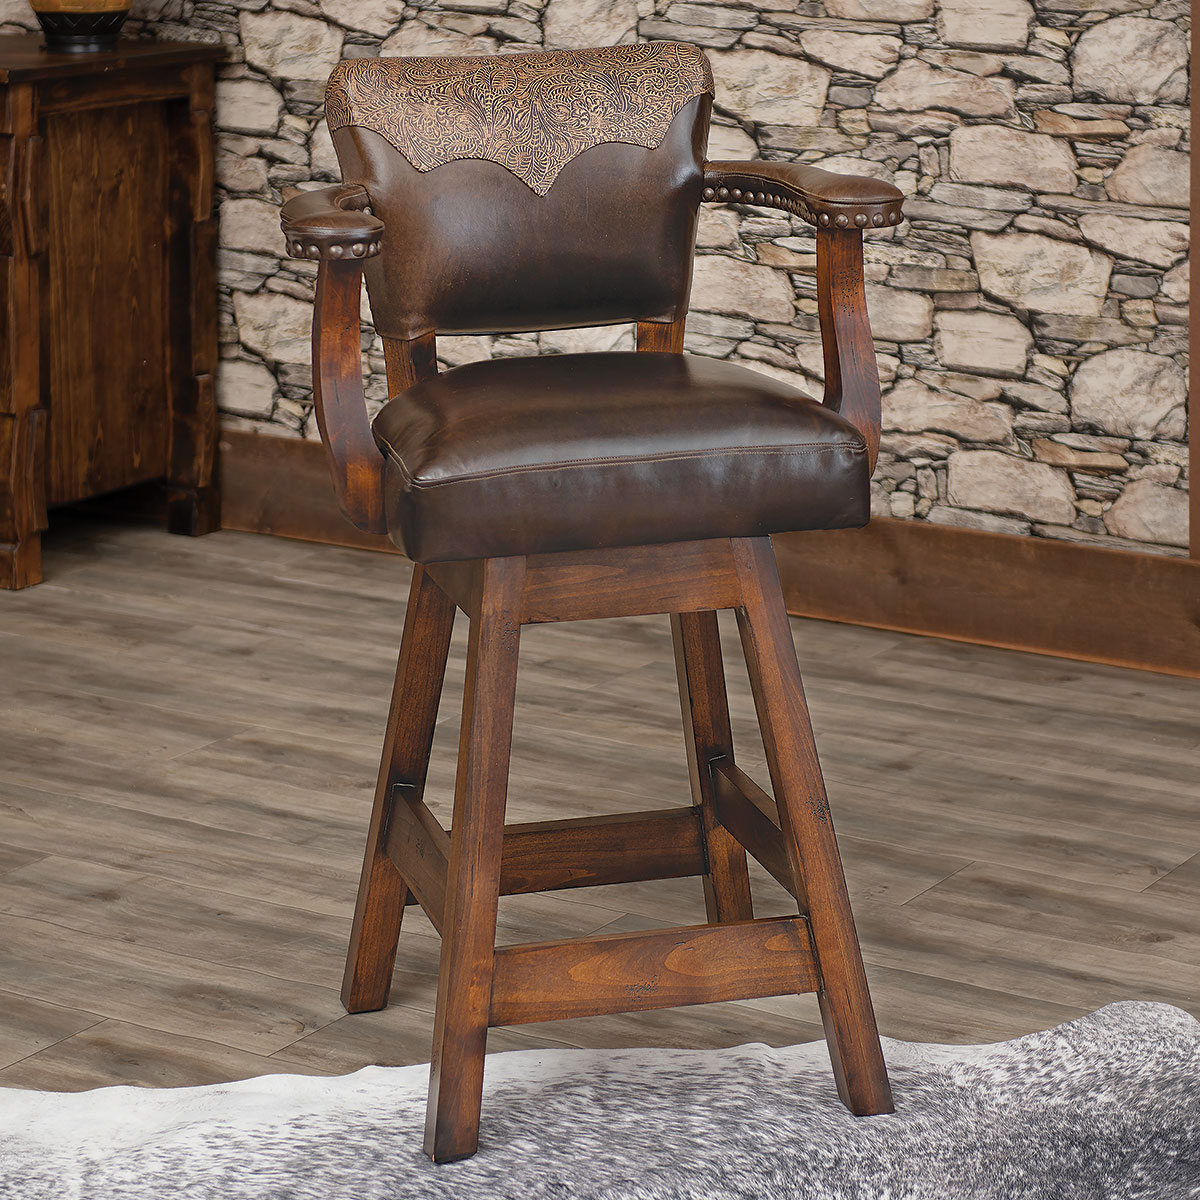 Sierra Canyon Tooled Leather Barstool